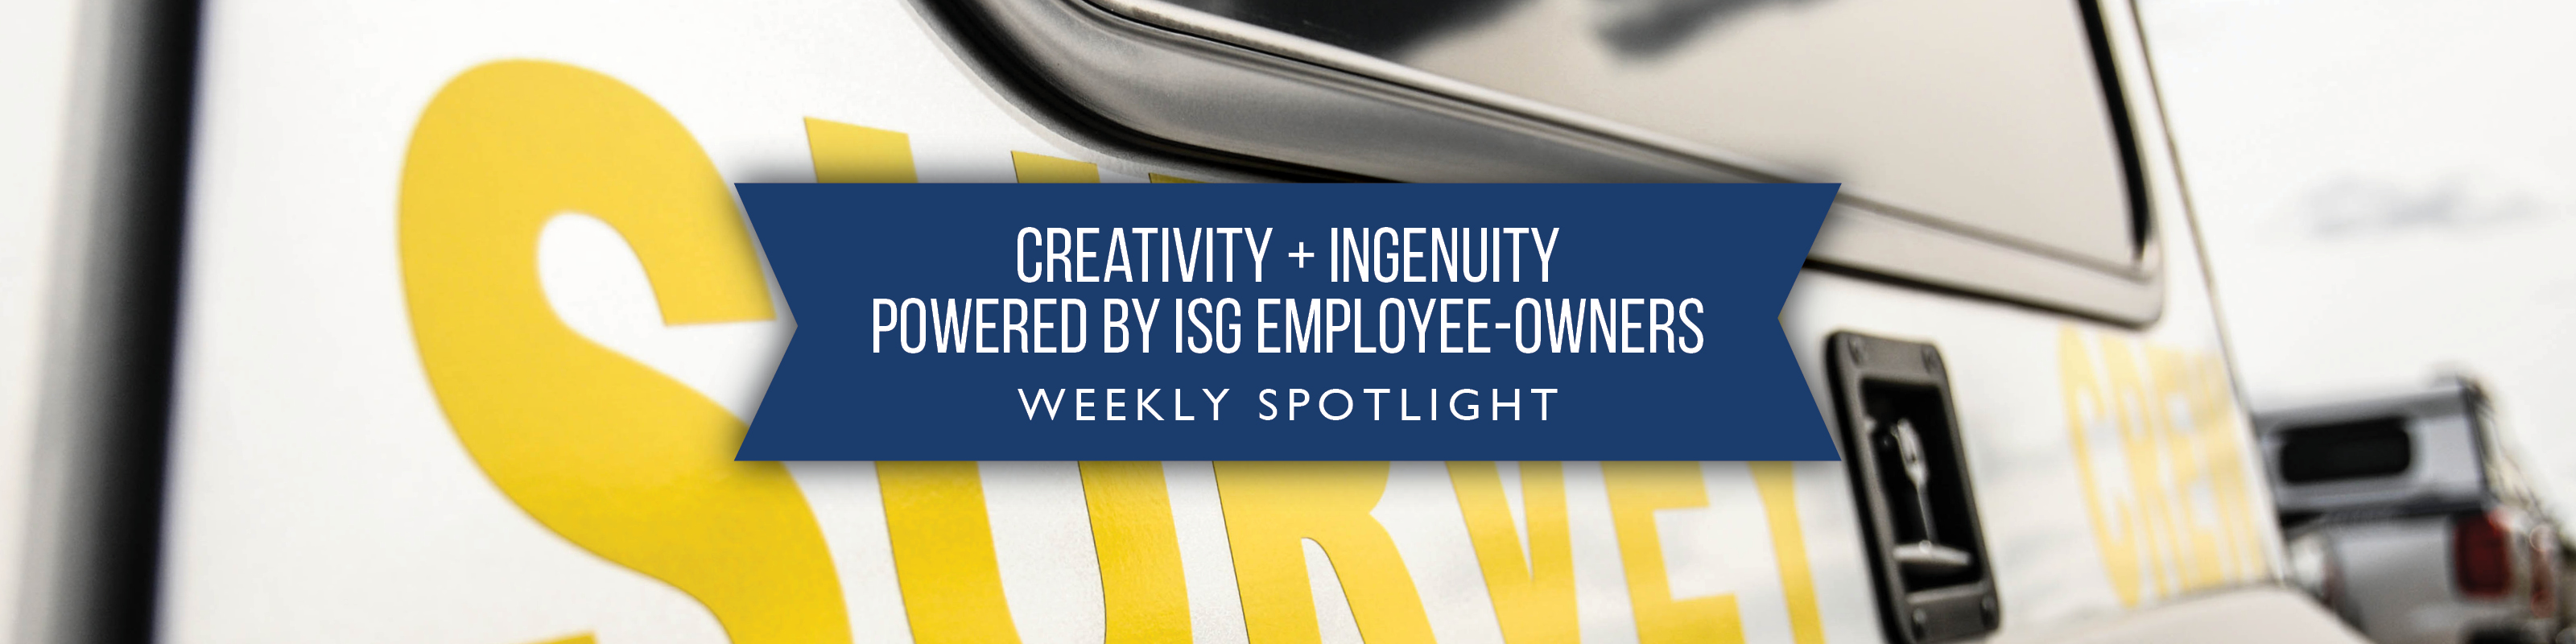 ISG Employee Spotlight graphic